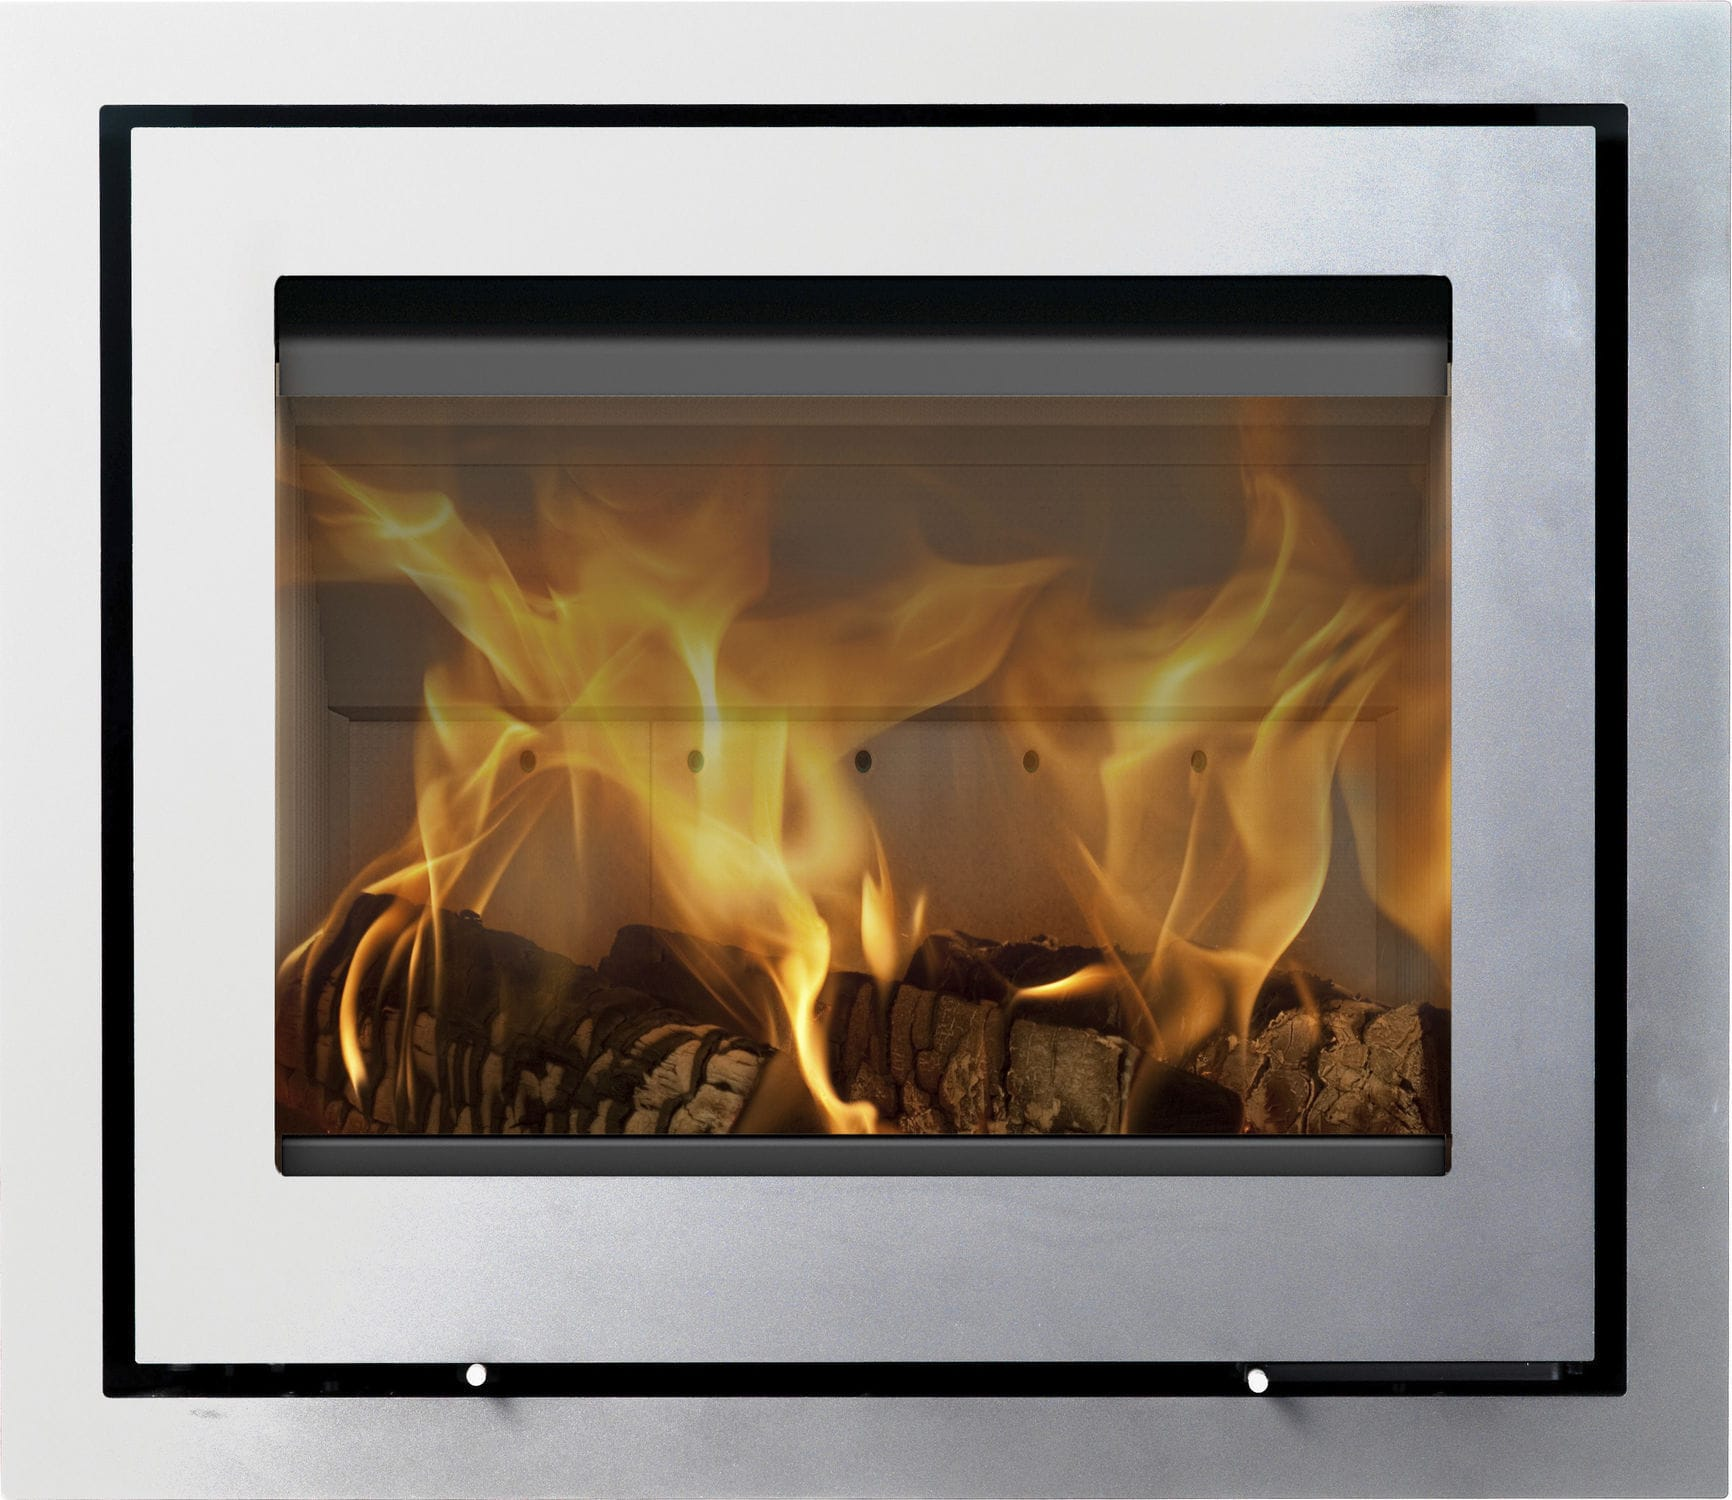 Wood fireplace insert 1 sided H570 R LOTUS Heating Systems AS